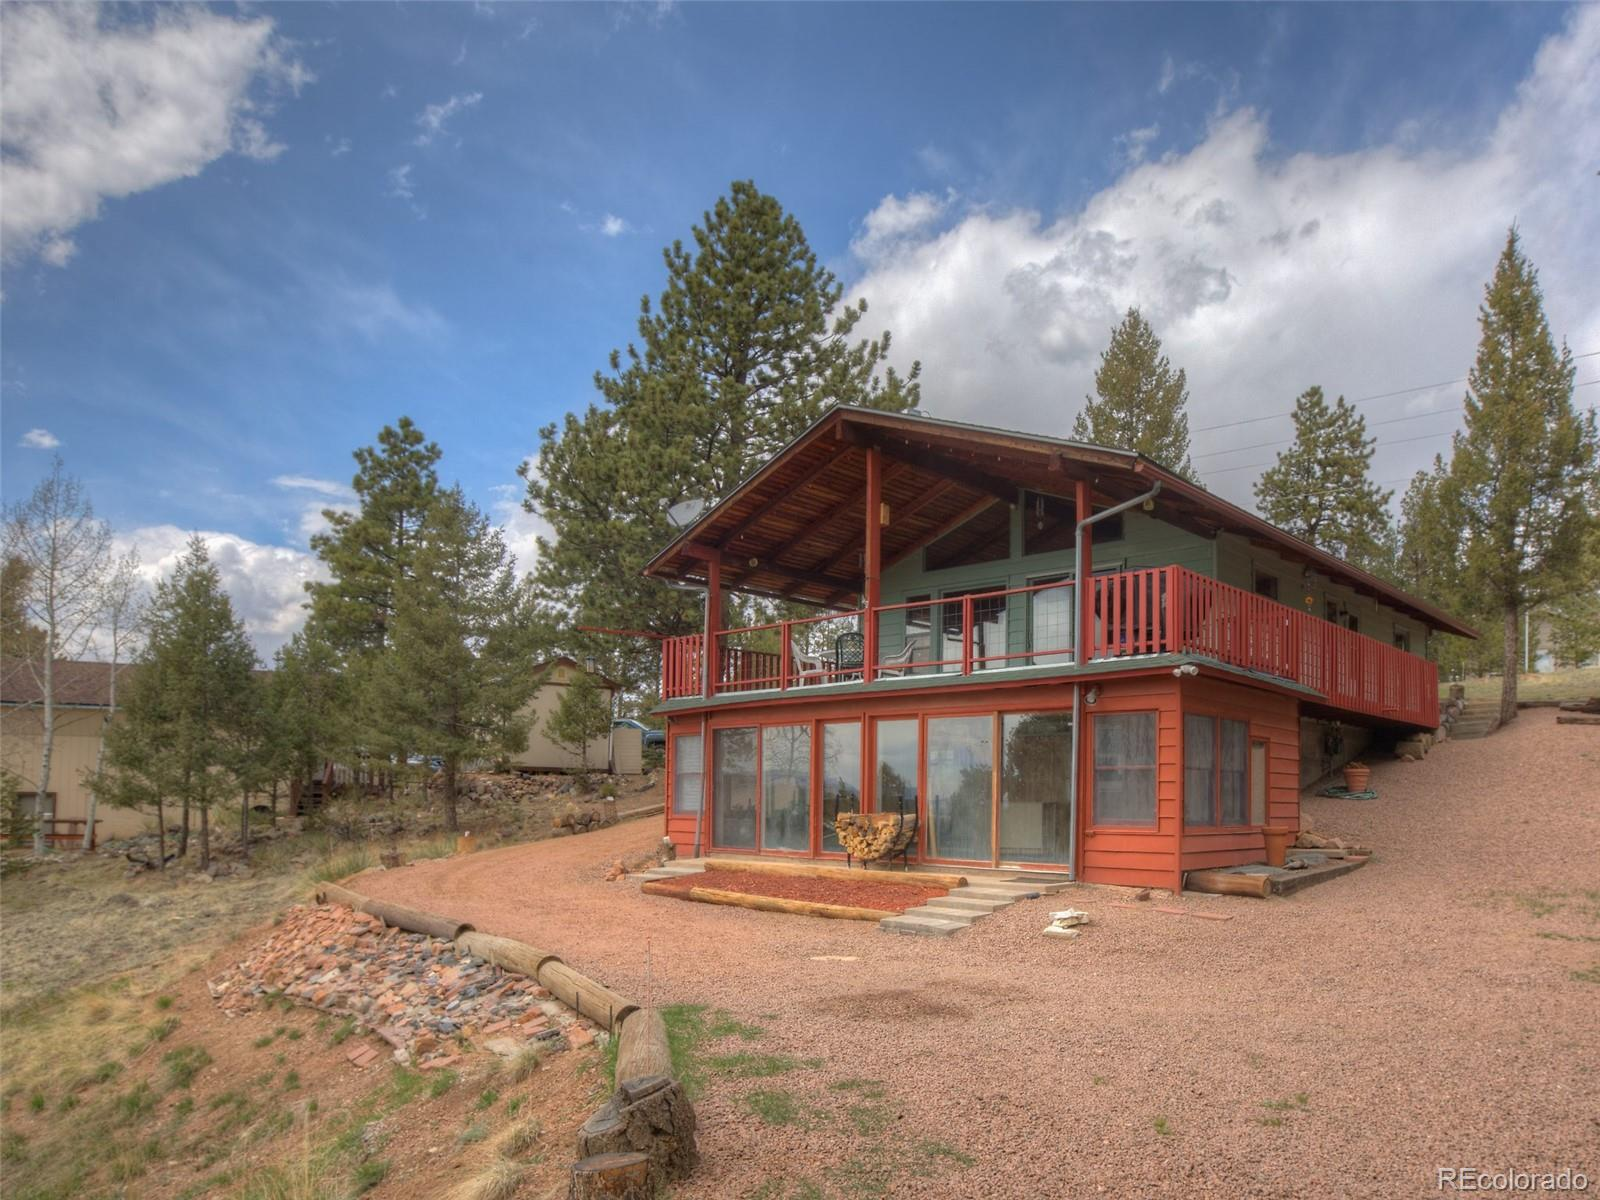 Welcome to your mountain dream home. This amazing rancher sits on 2 lots equaling 1.13 acres and has gorgeous mountain views to enjoy as you sit on the 13 x 30 deck off the kitchen with your family and friends enjoying the outdoors of Colorado. This home is priced to sell quickly and will allow you to add your personal touches to make it your own. The main level as a ¾ bath and large master bedroom with lots of built ins. Vaulted tongue and grove ceiling in the living room that adjoins the kitchen and walk out to the deck. Lower level encompasses a large family room with wood stove and wet bar area along with a full bath, office and open area to make a 2nd bedroom. The best part however is the attached sunroom that keeps the lower level cozy all through the summer and winter months. Great fulltime residence or cabin get-a-way, Welcome Home!